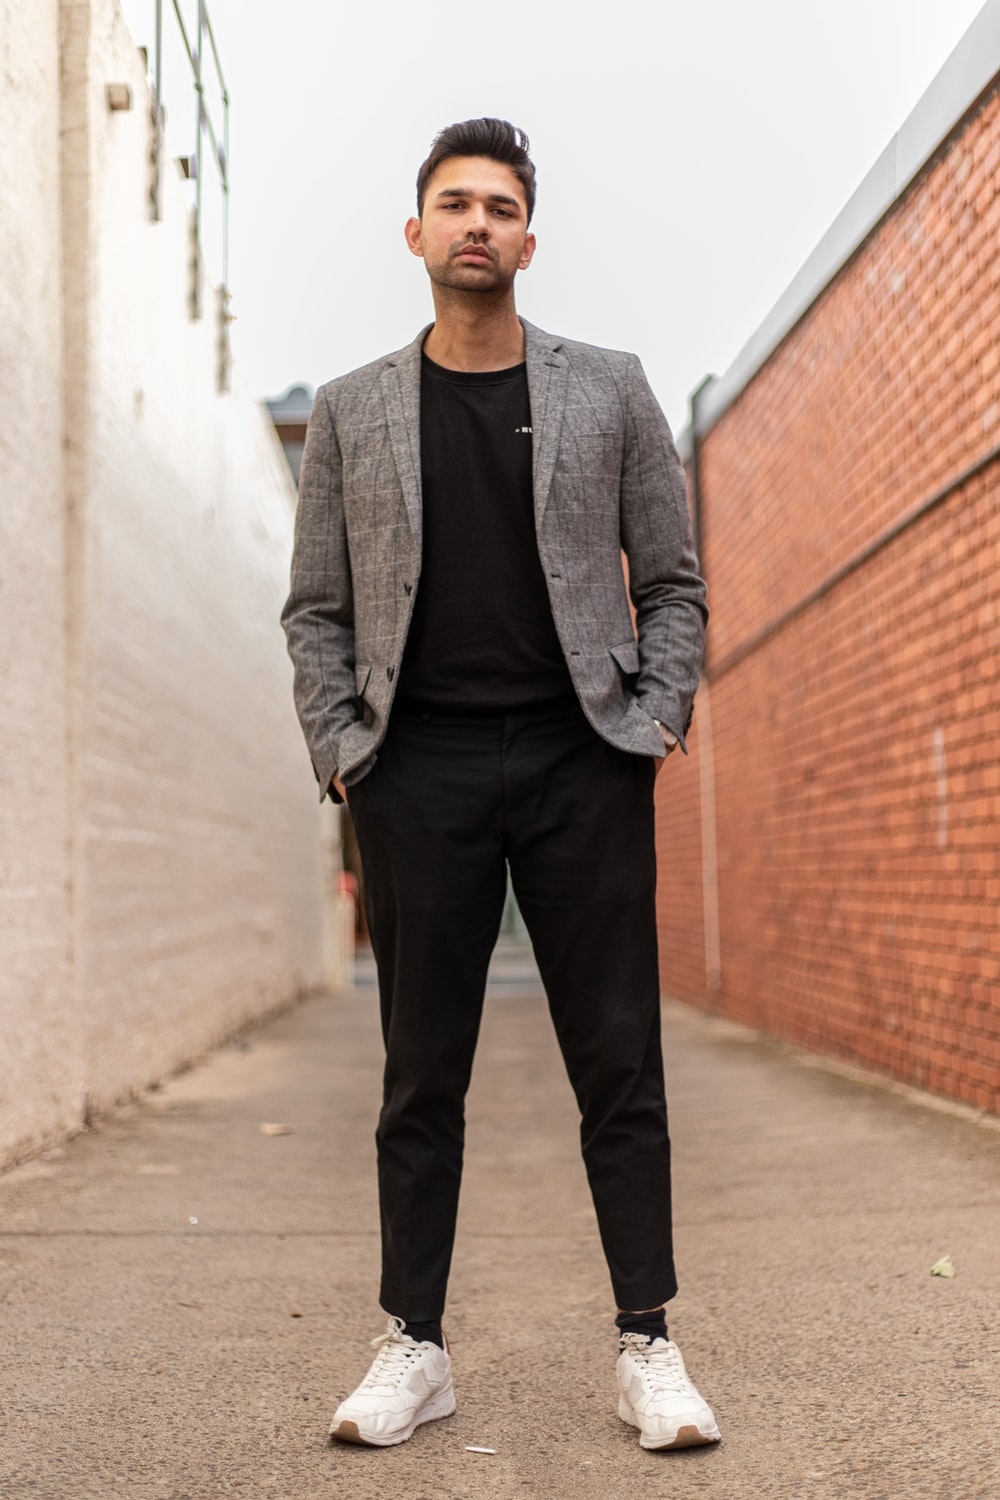 man in gray suit jacket and black pants standing on brown brick wall during daytime